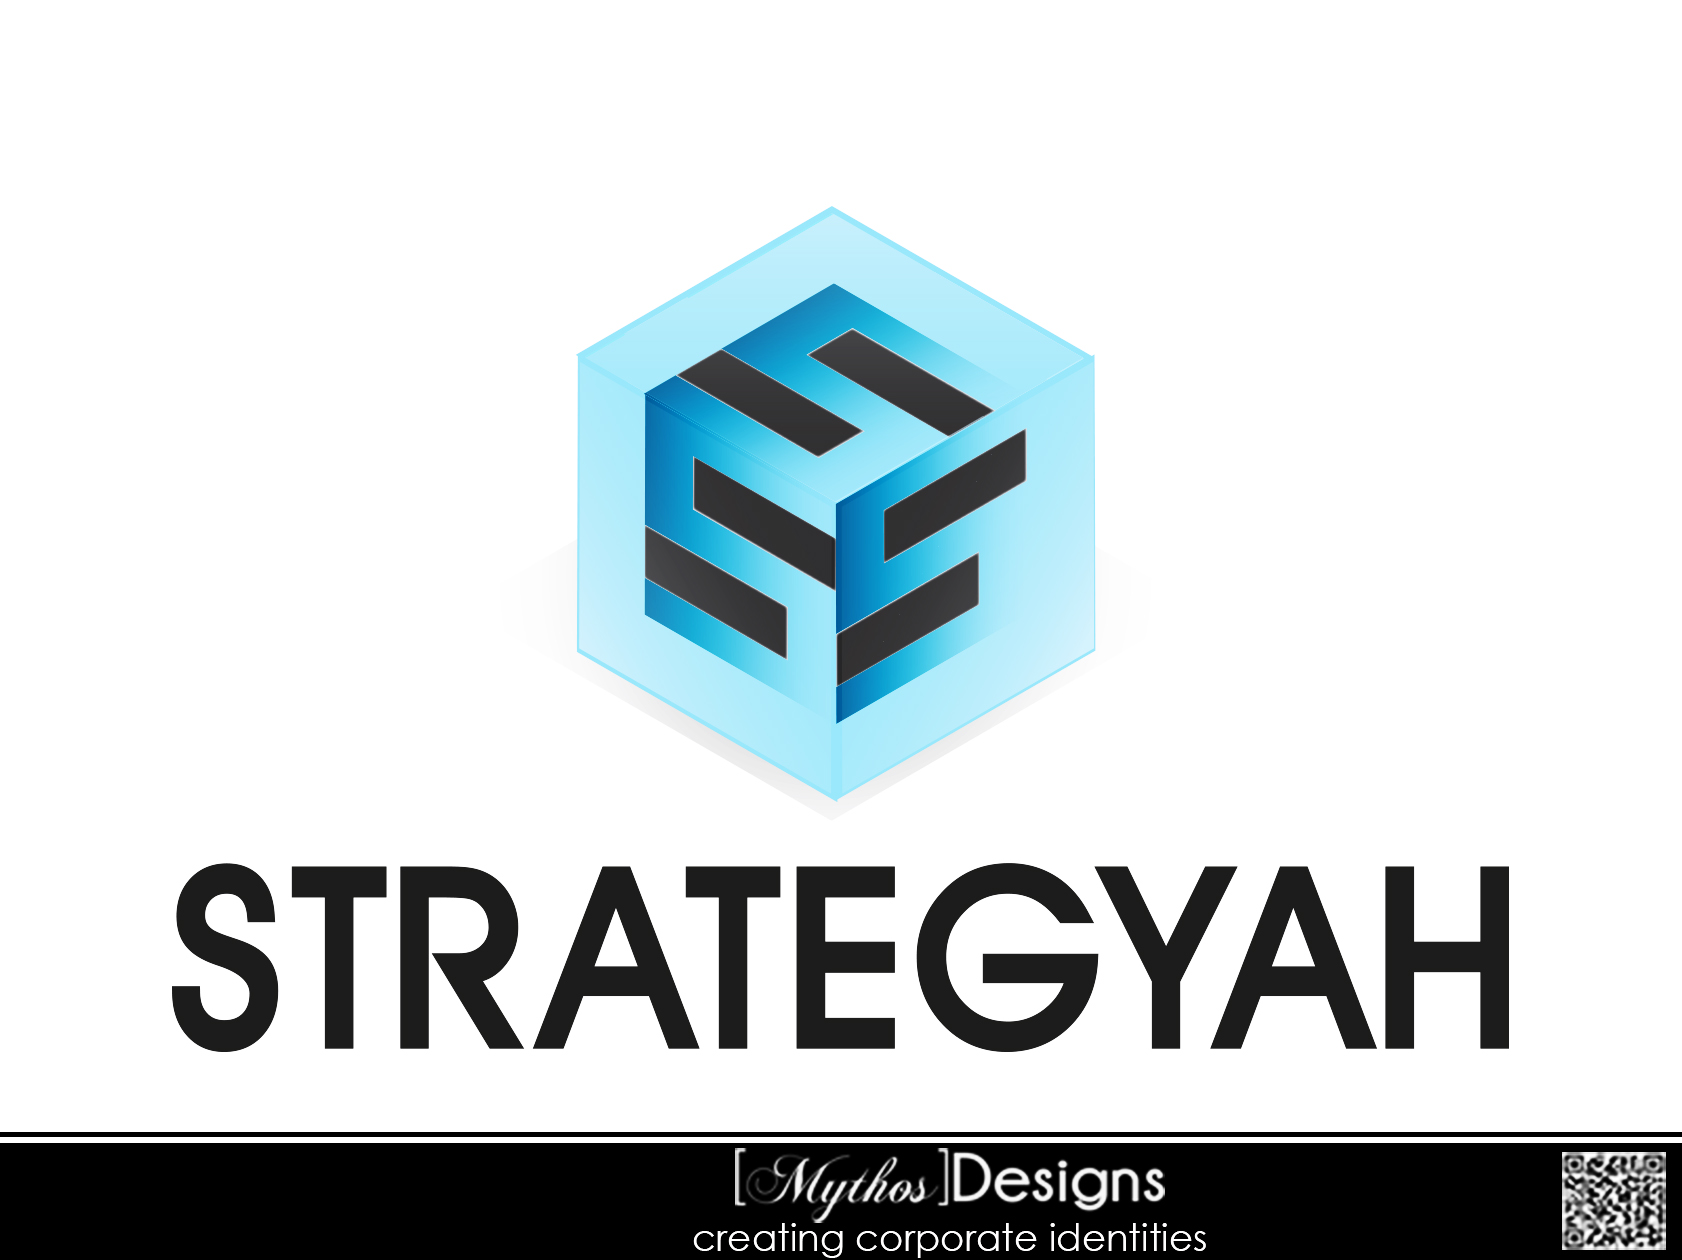 Logo Design by Mythos Designs - Entry No. 249 in the Logo Design Contest Creative Logo Design for Strategyah.